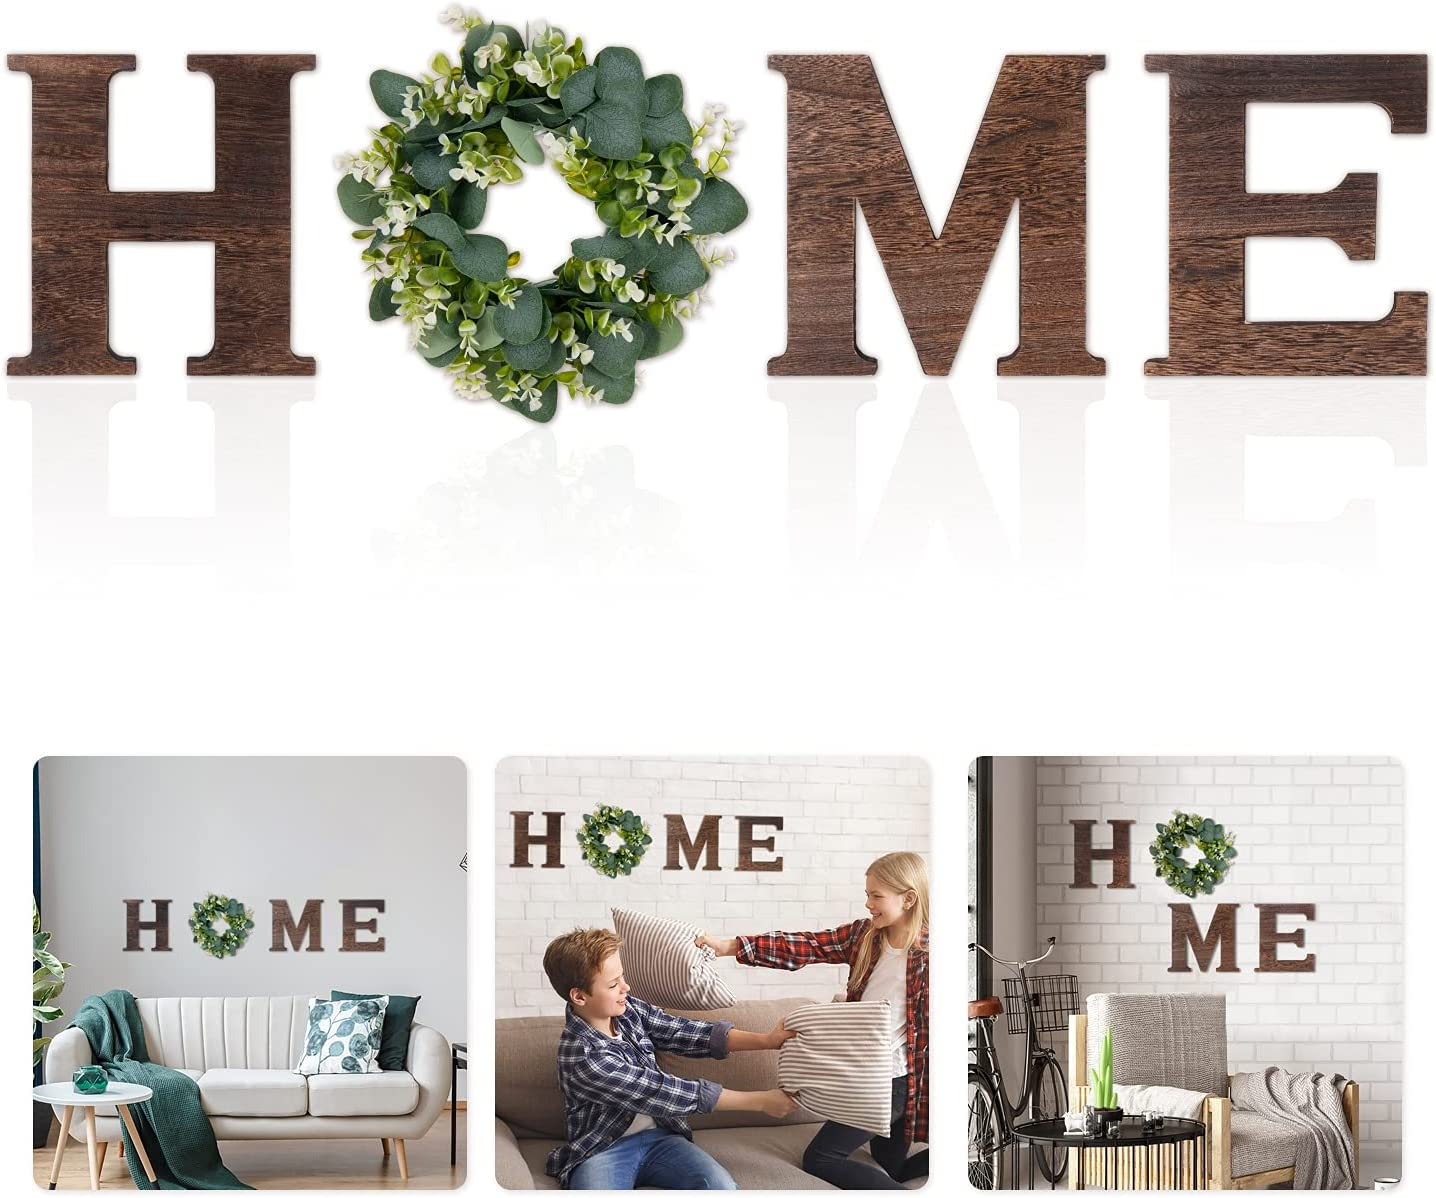 ONEPENG Wall Hanging Wood Home Sign Decor, O Shaped Artificial Eucalyptus Wreath Decoration, Rustic Home Decor, Bedroom, Kitchen, Enterway, Home, Housewarming Gift.